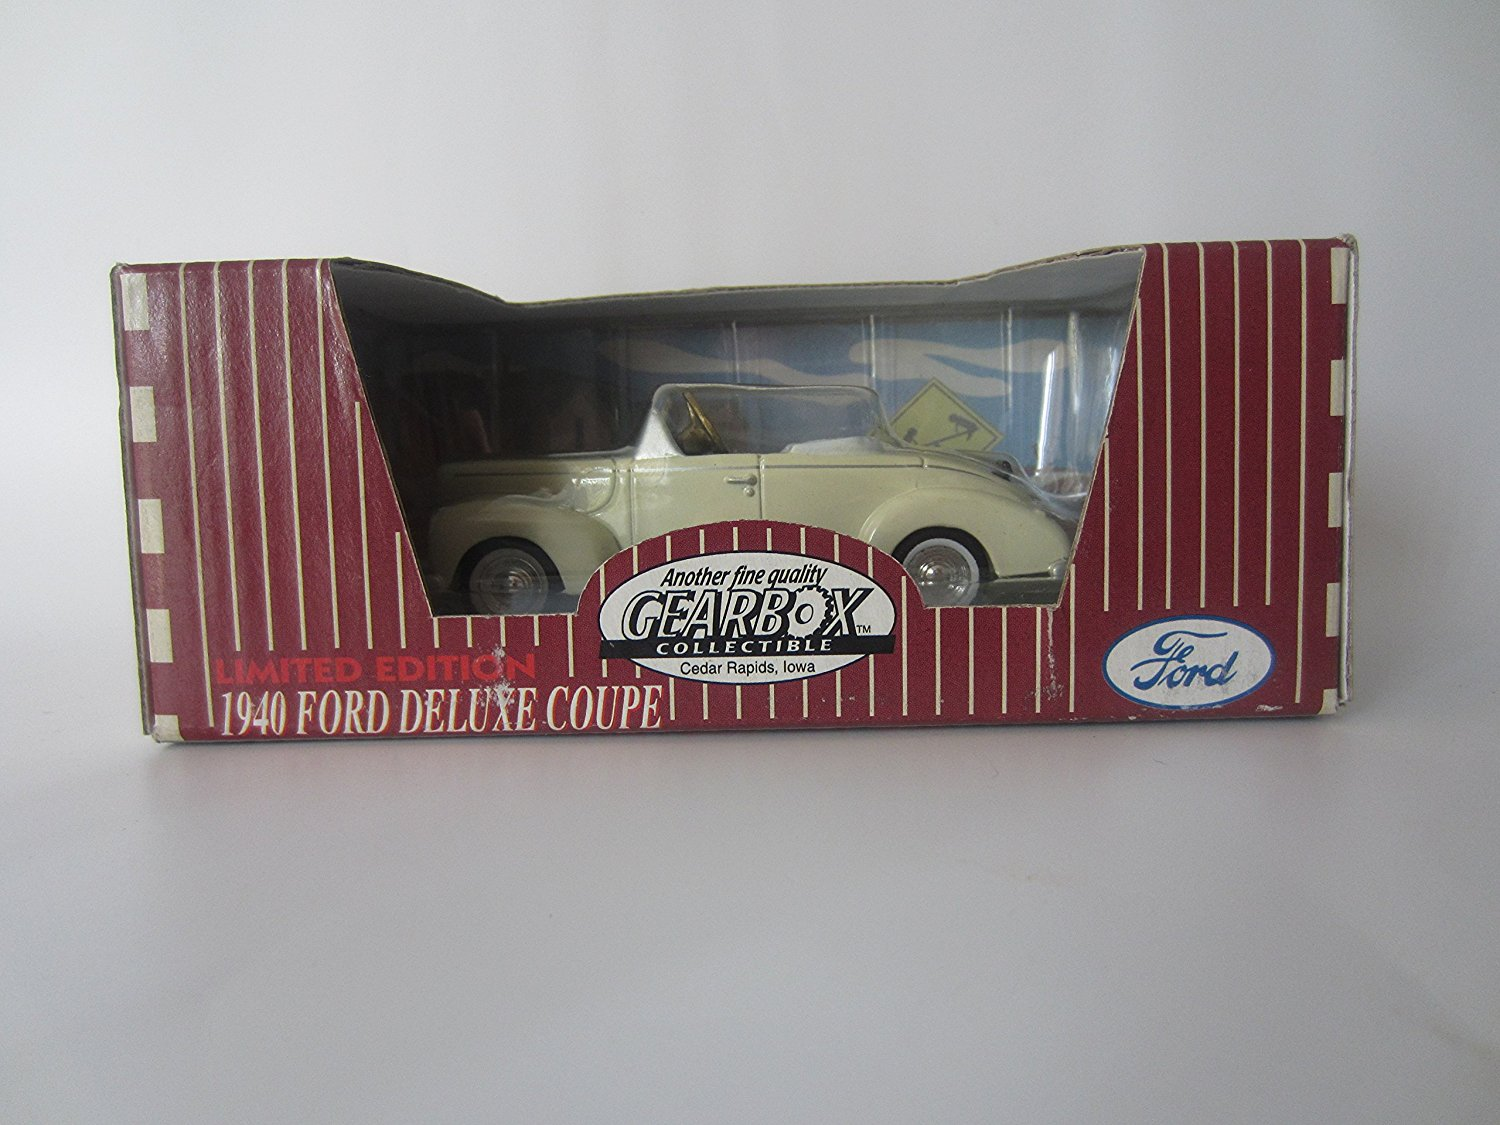 Cheap 1940 Ford Parts Find Deals On Line At Alibabacom 1941 Panel Delivery Truck Get Quotations Deluxe Coupe Diecast By Gearbox Collectible Dune Bege 69264